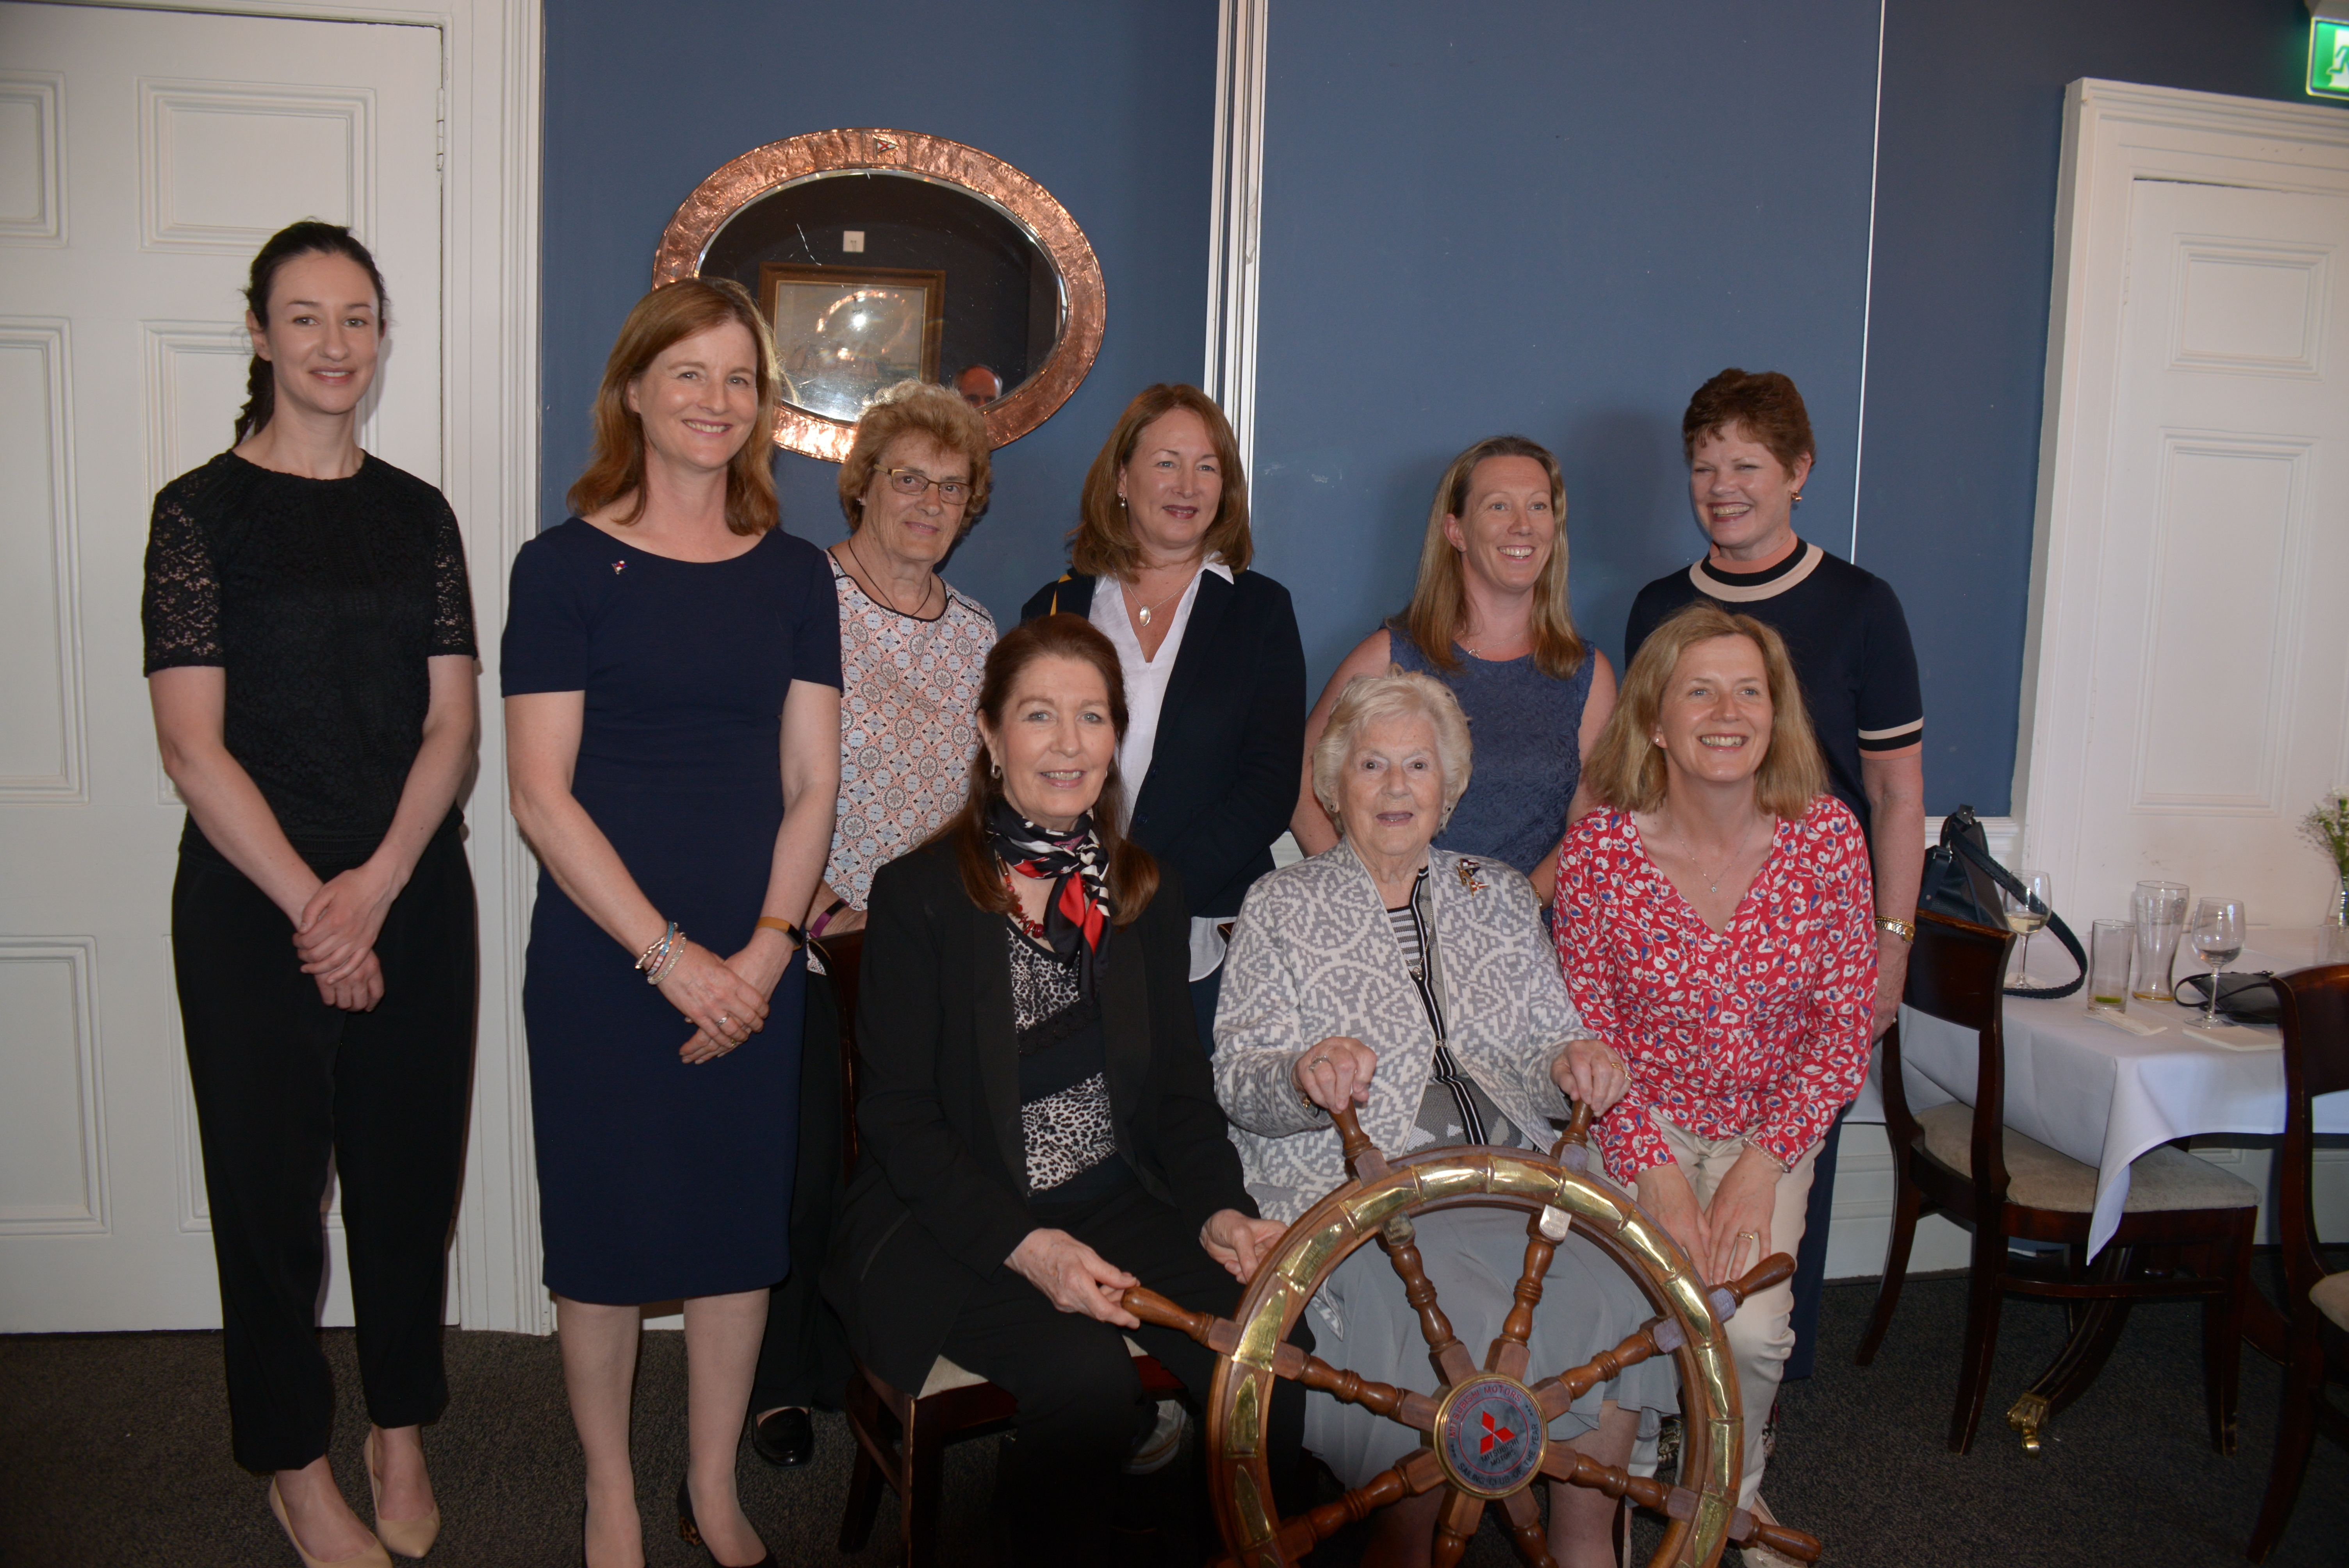 Ladies at the Helm with Mitsubishi ISCY Trophy_ LtoR_ Roseita Burke, Susan Spain, Sandra Moore, Helen Cooney, Fiona Staunton, Kerry Cullen. Front Georgina C, Carmel W & Michelle H